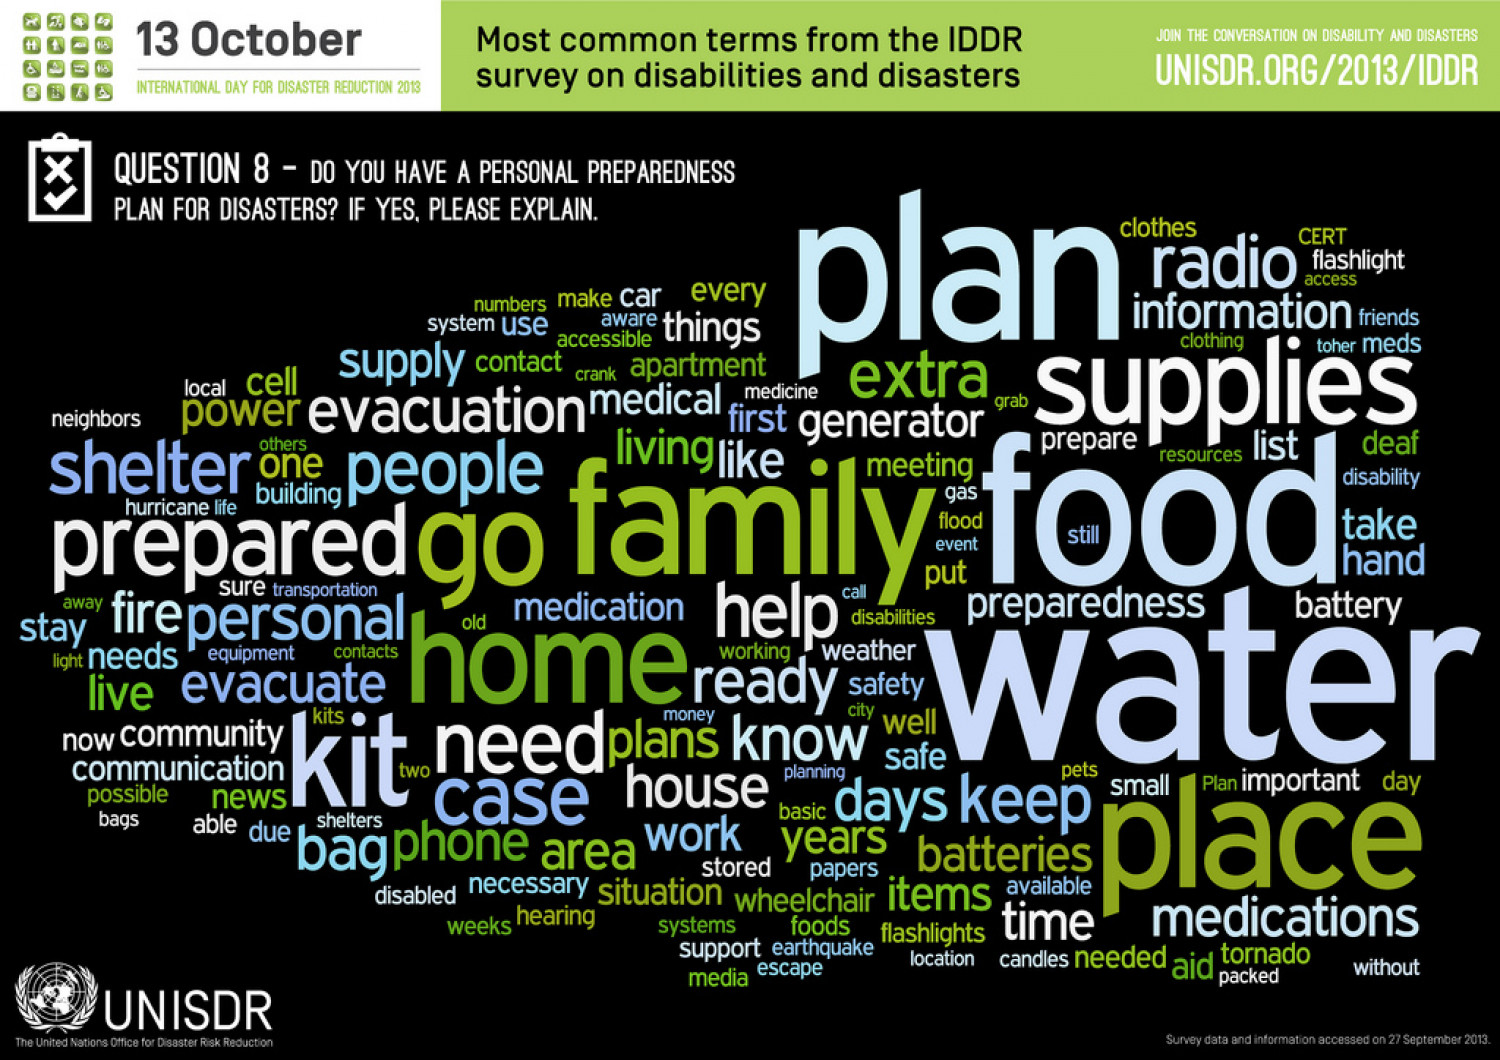 Do you have a personal preparedness plan? Infographic